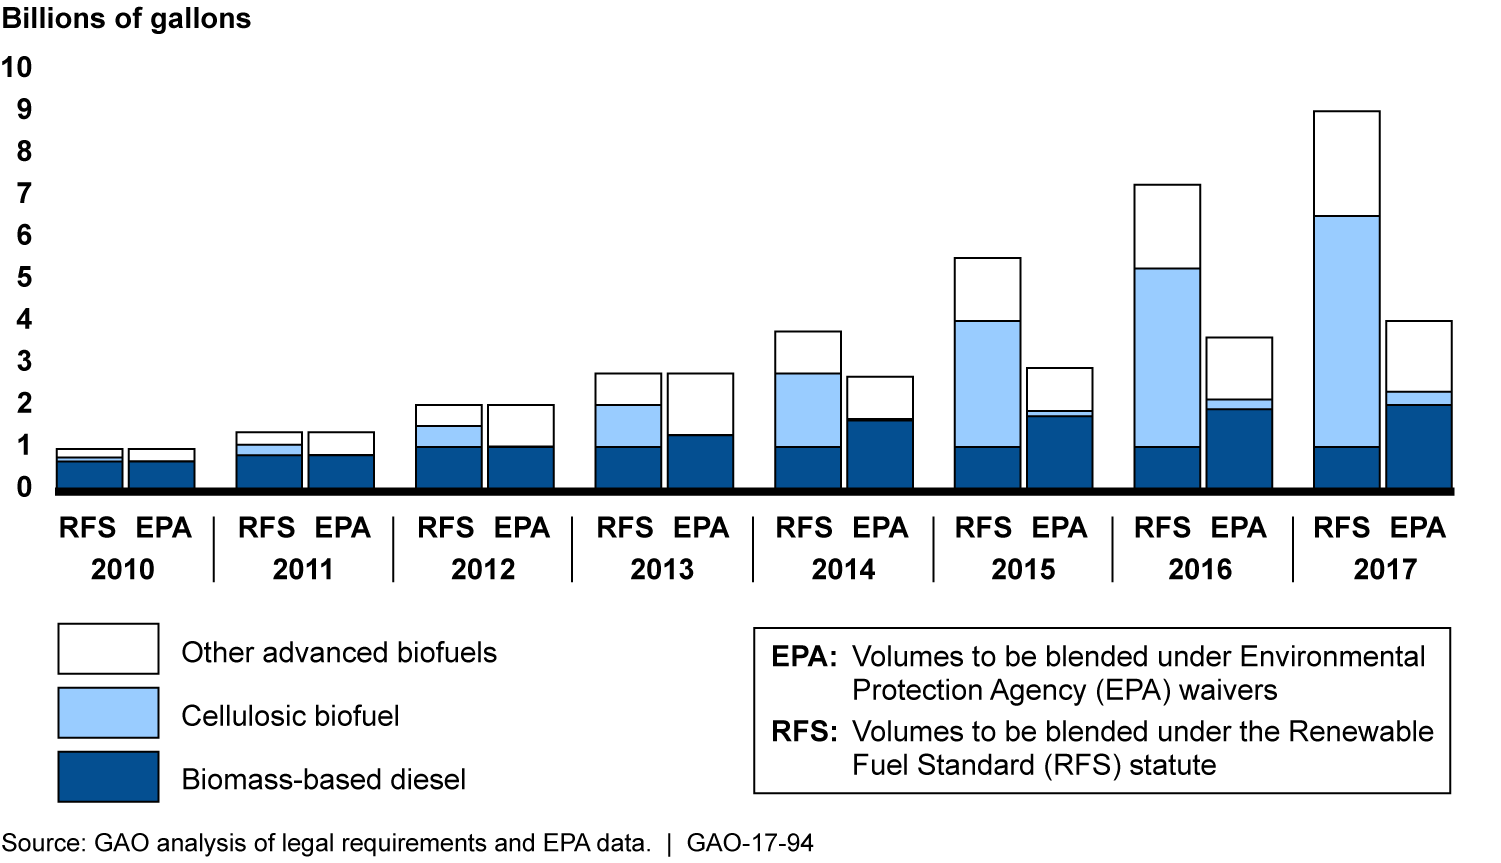 EPA significantly reduced RFS targets for advanced biofuels for 2014 through 2017